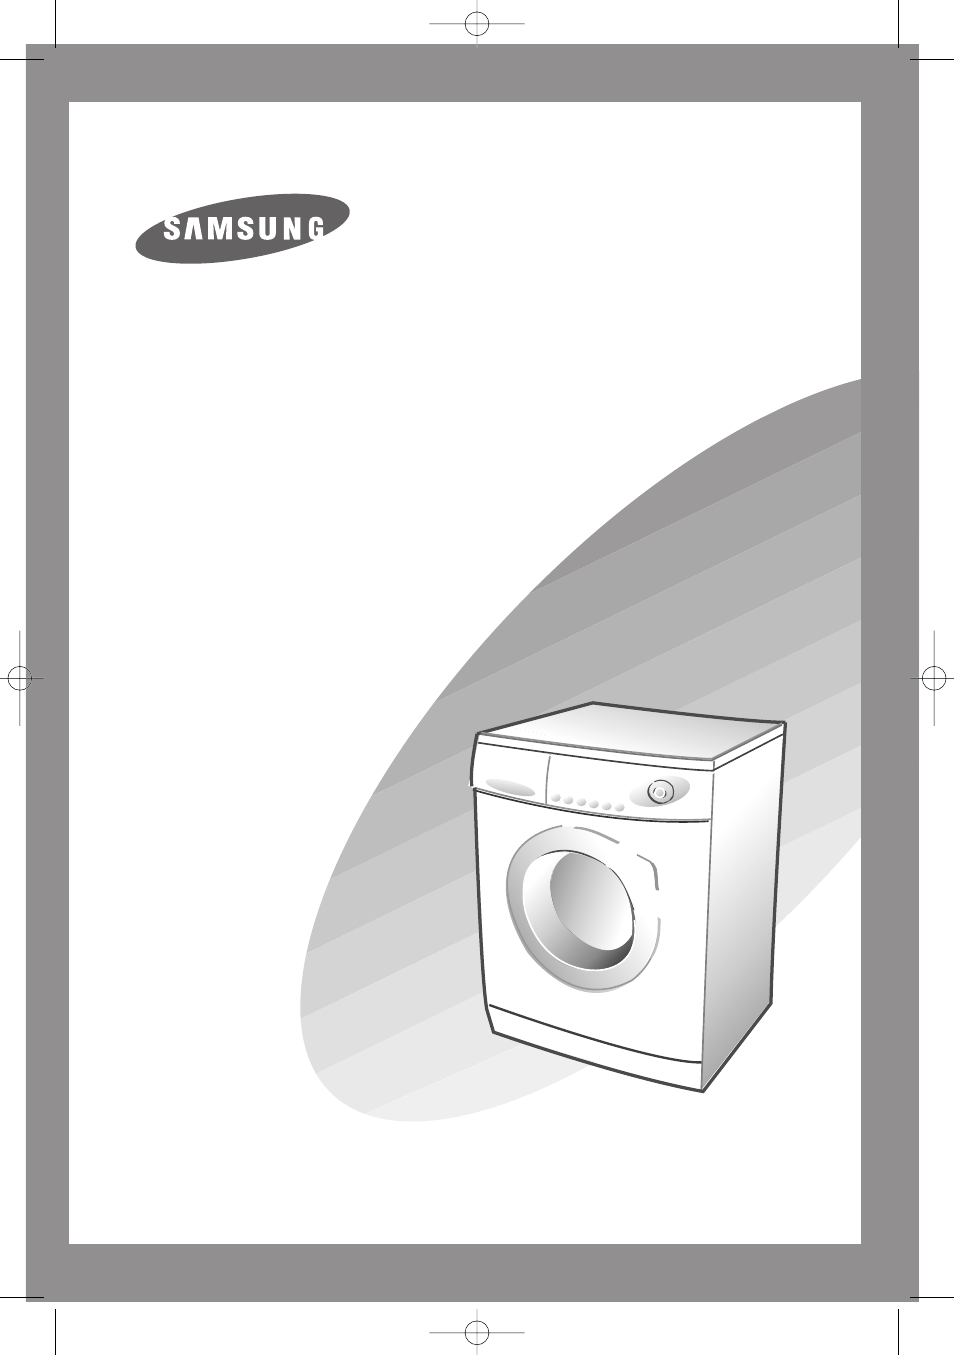 samsung b1113j user manual 23 pages Samsung Washing Machine Troubleshooting Manual Samsung Washing Machine Service Manual